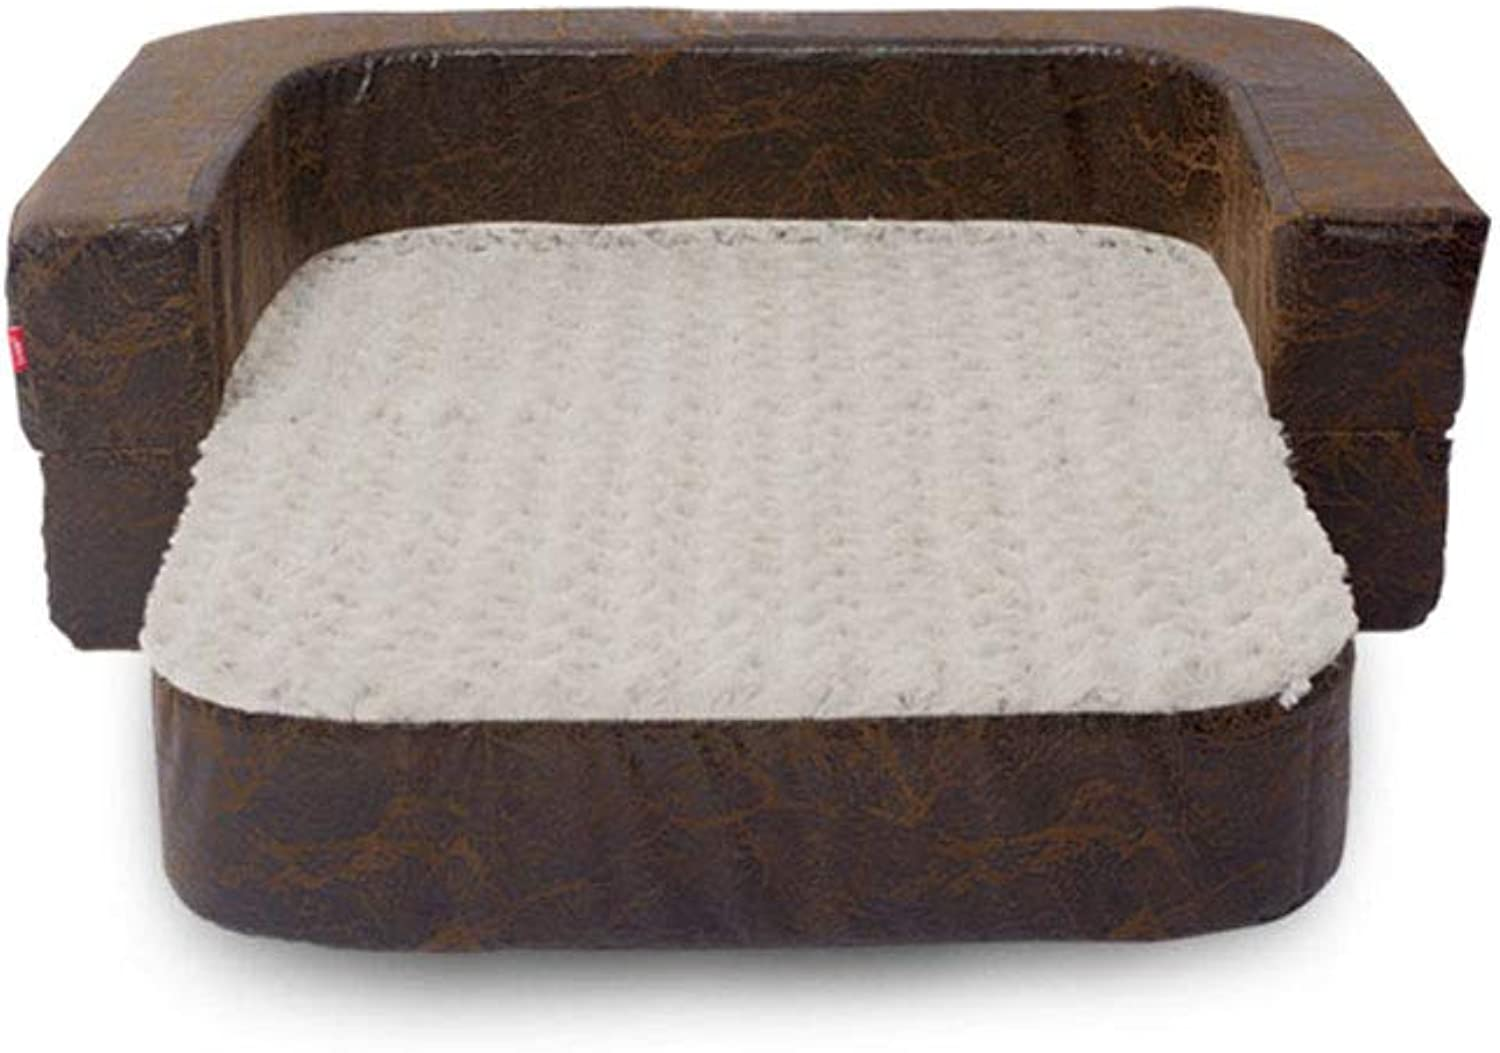 HQSB Pet Bed Sponge Folding Mattress Dualuse Dog Sofa Removable And Washable for Cats and Small Medium Large Dogs